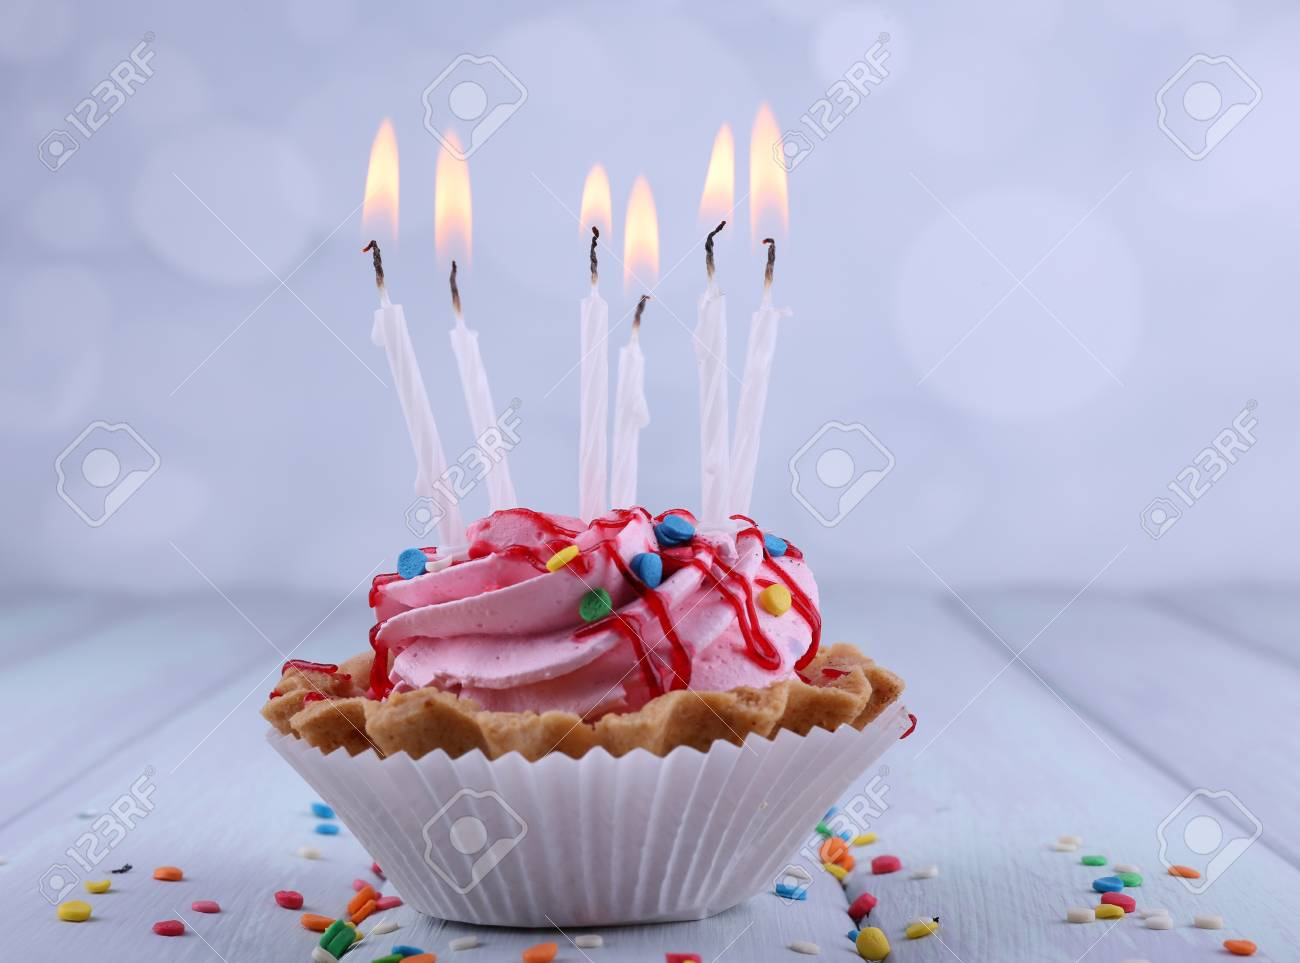 Birthday Cup Cake With Candles And Sparkles On Color Wooden Table